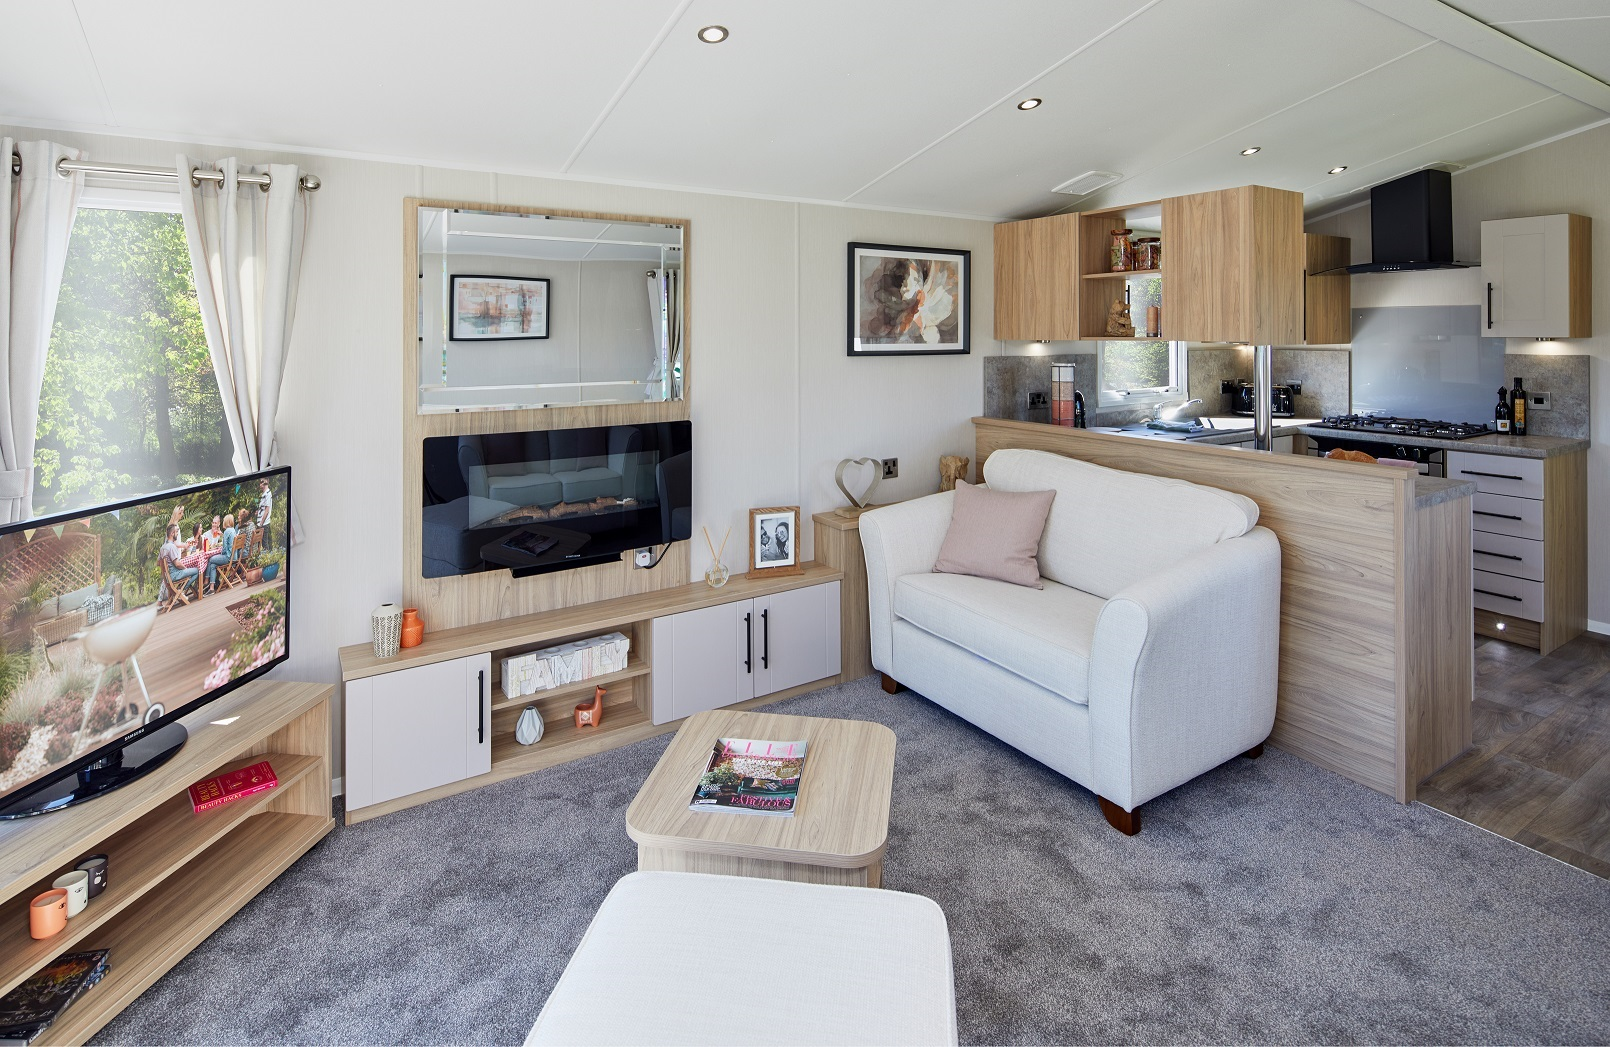 Willerby Manor: Static Caravans and Holiday Homes for Sale on Caravan Parks, Pickering, North Yorkshire Image 1